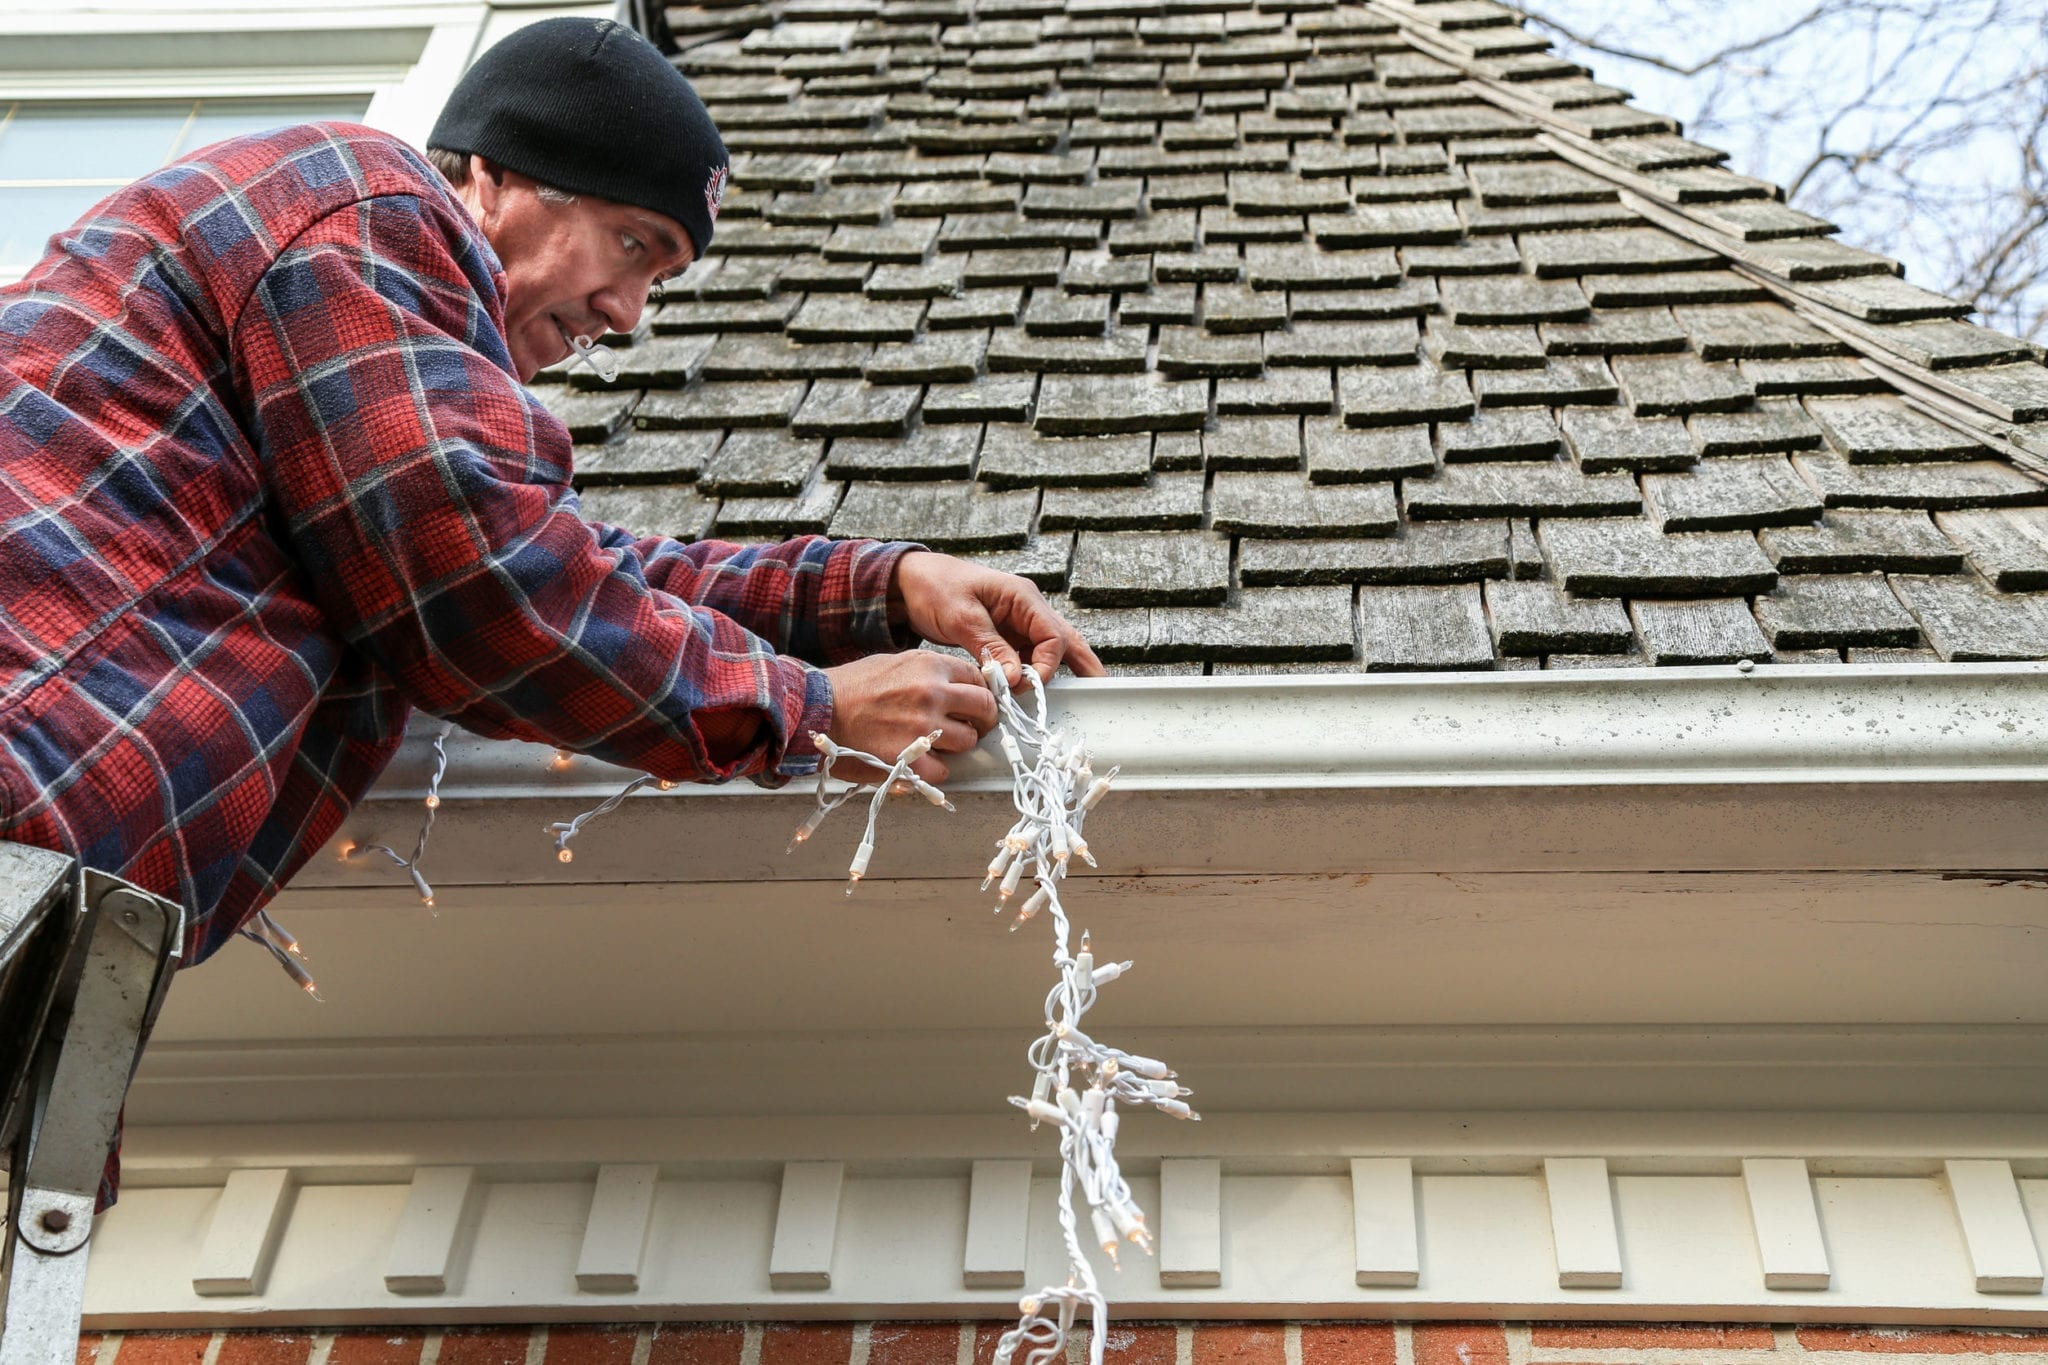 Decorating Dangers: Common Injuries Floridians Should Know About